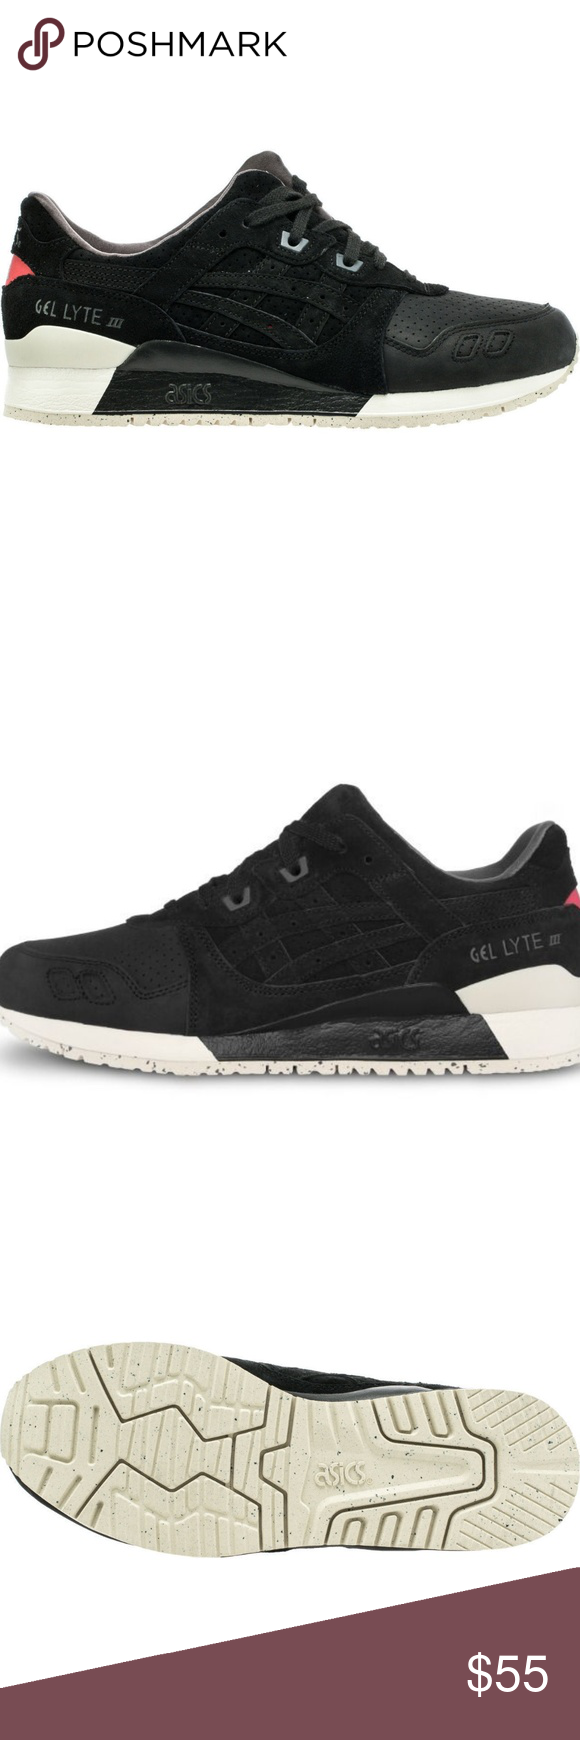 9573c24b8454 SAMPLE Asics-Tiger Gel Lyte 3 Men s Training Shoes Men s SAMPLE Asics-Tiger  Gel